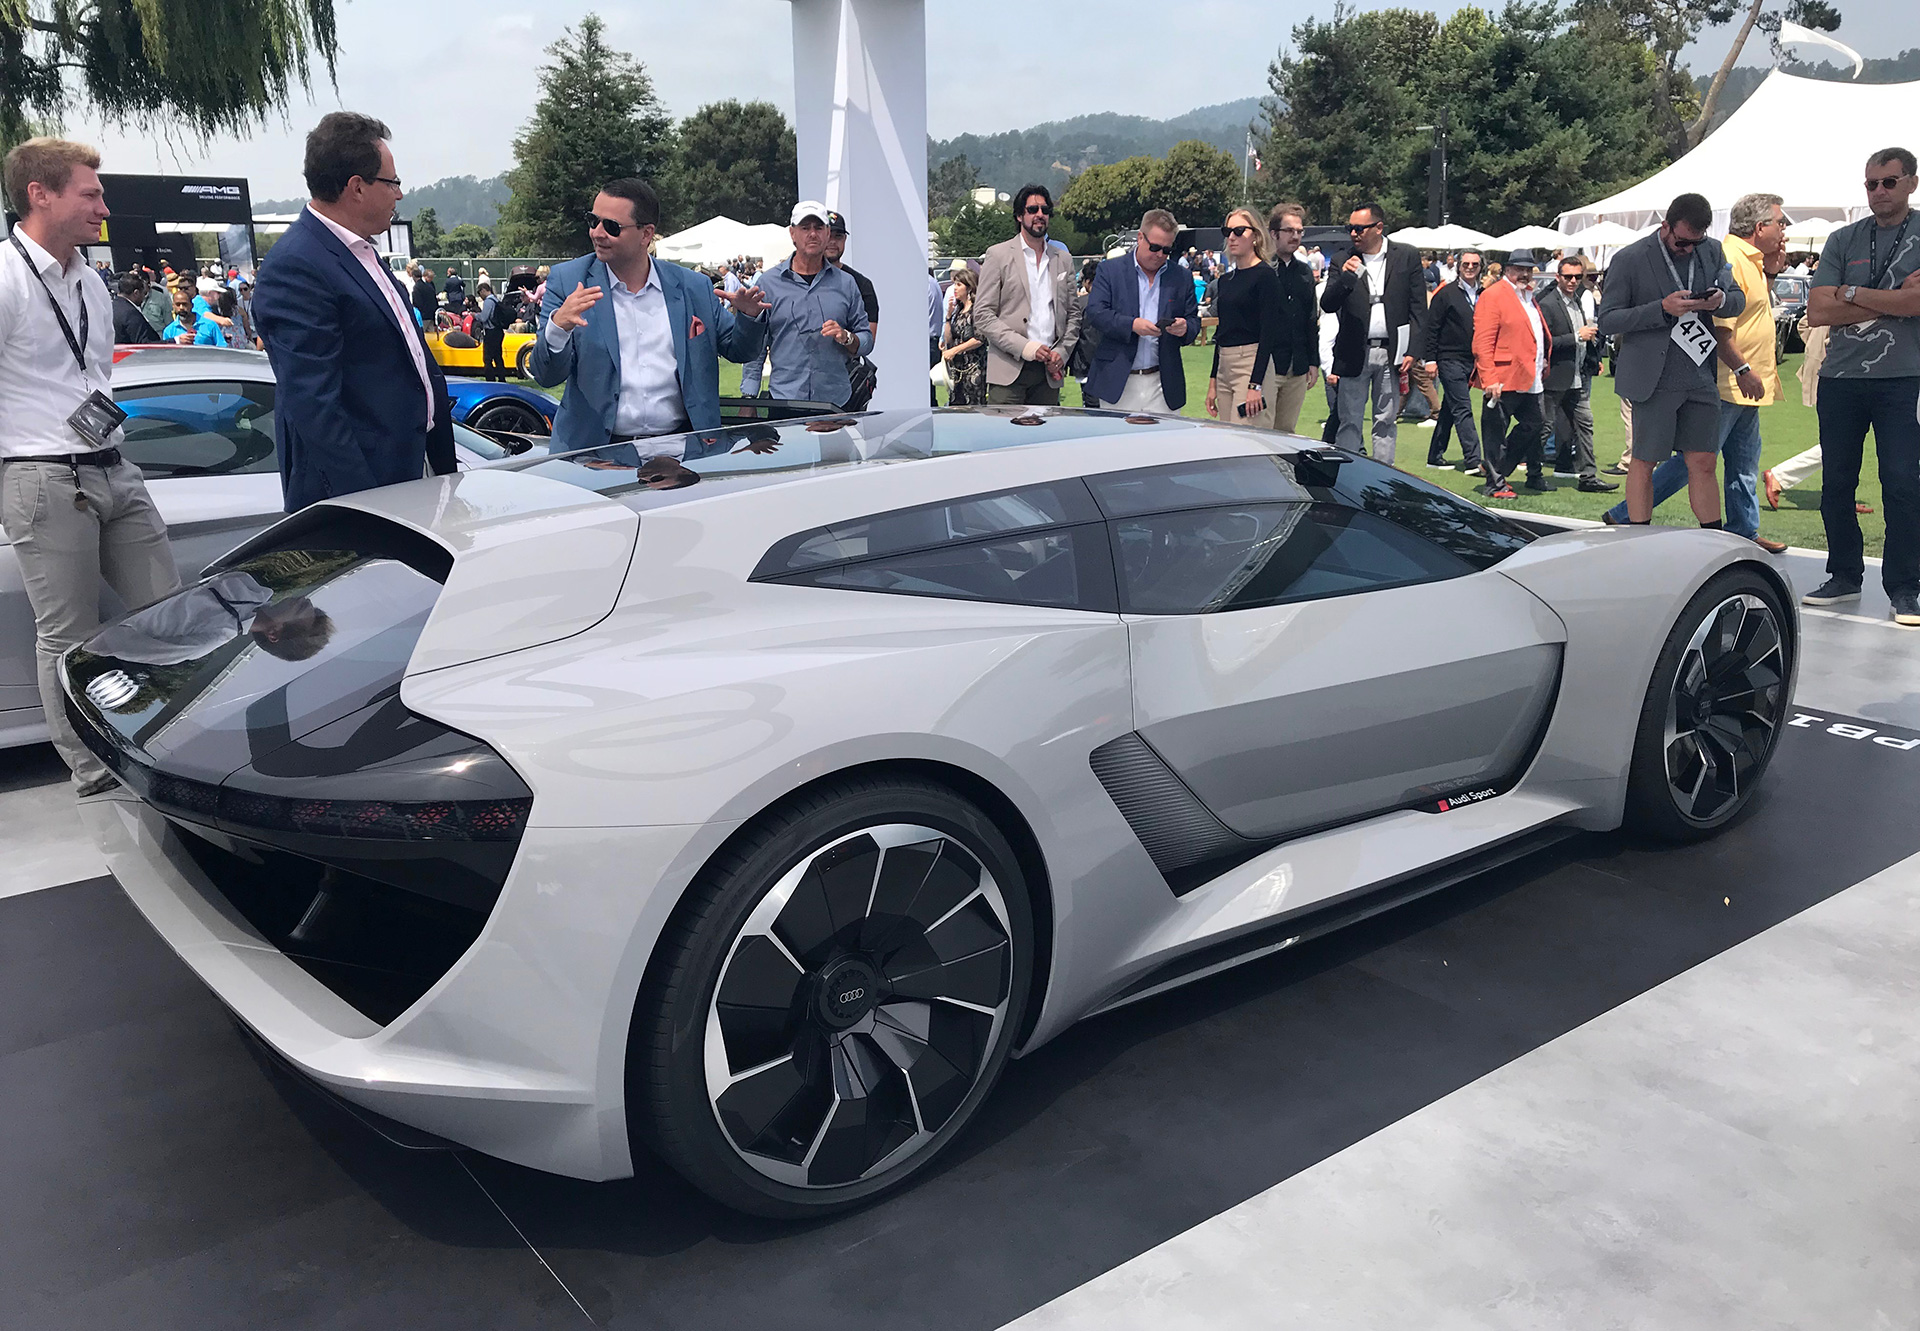 Audi Pb 18 E Tron Could Hit Production Audi Sport Boss Says Electric S Rs Cars Very Possible